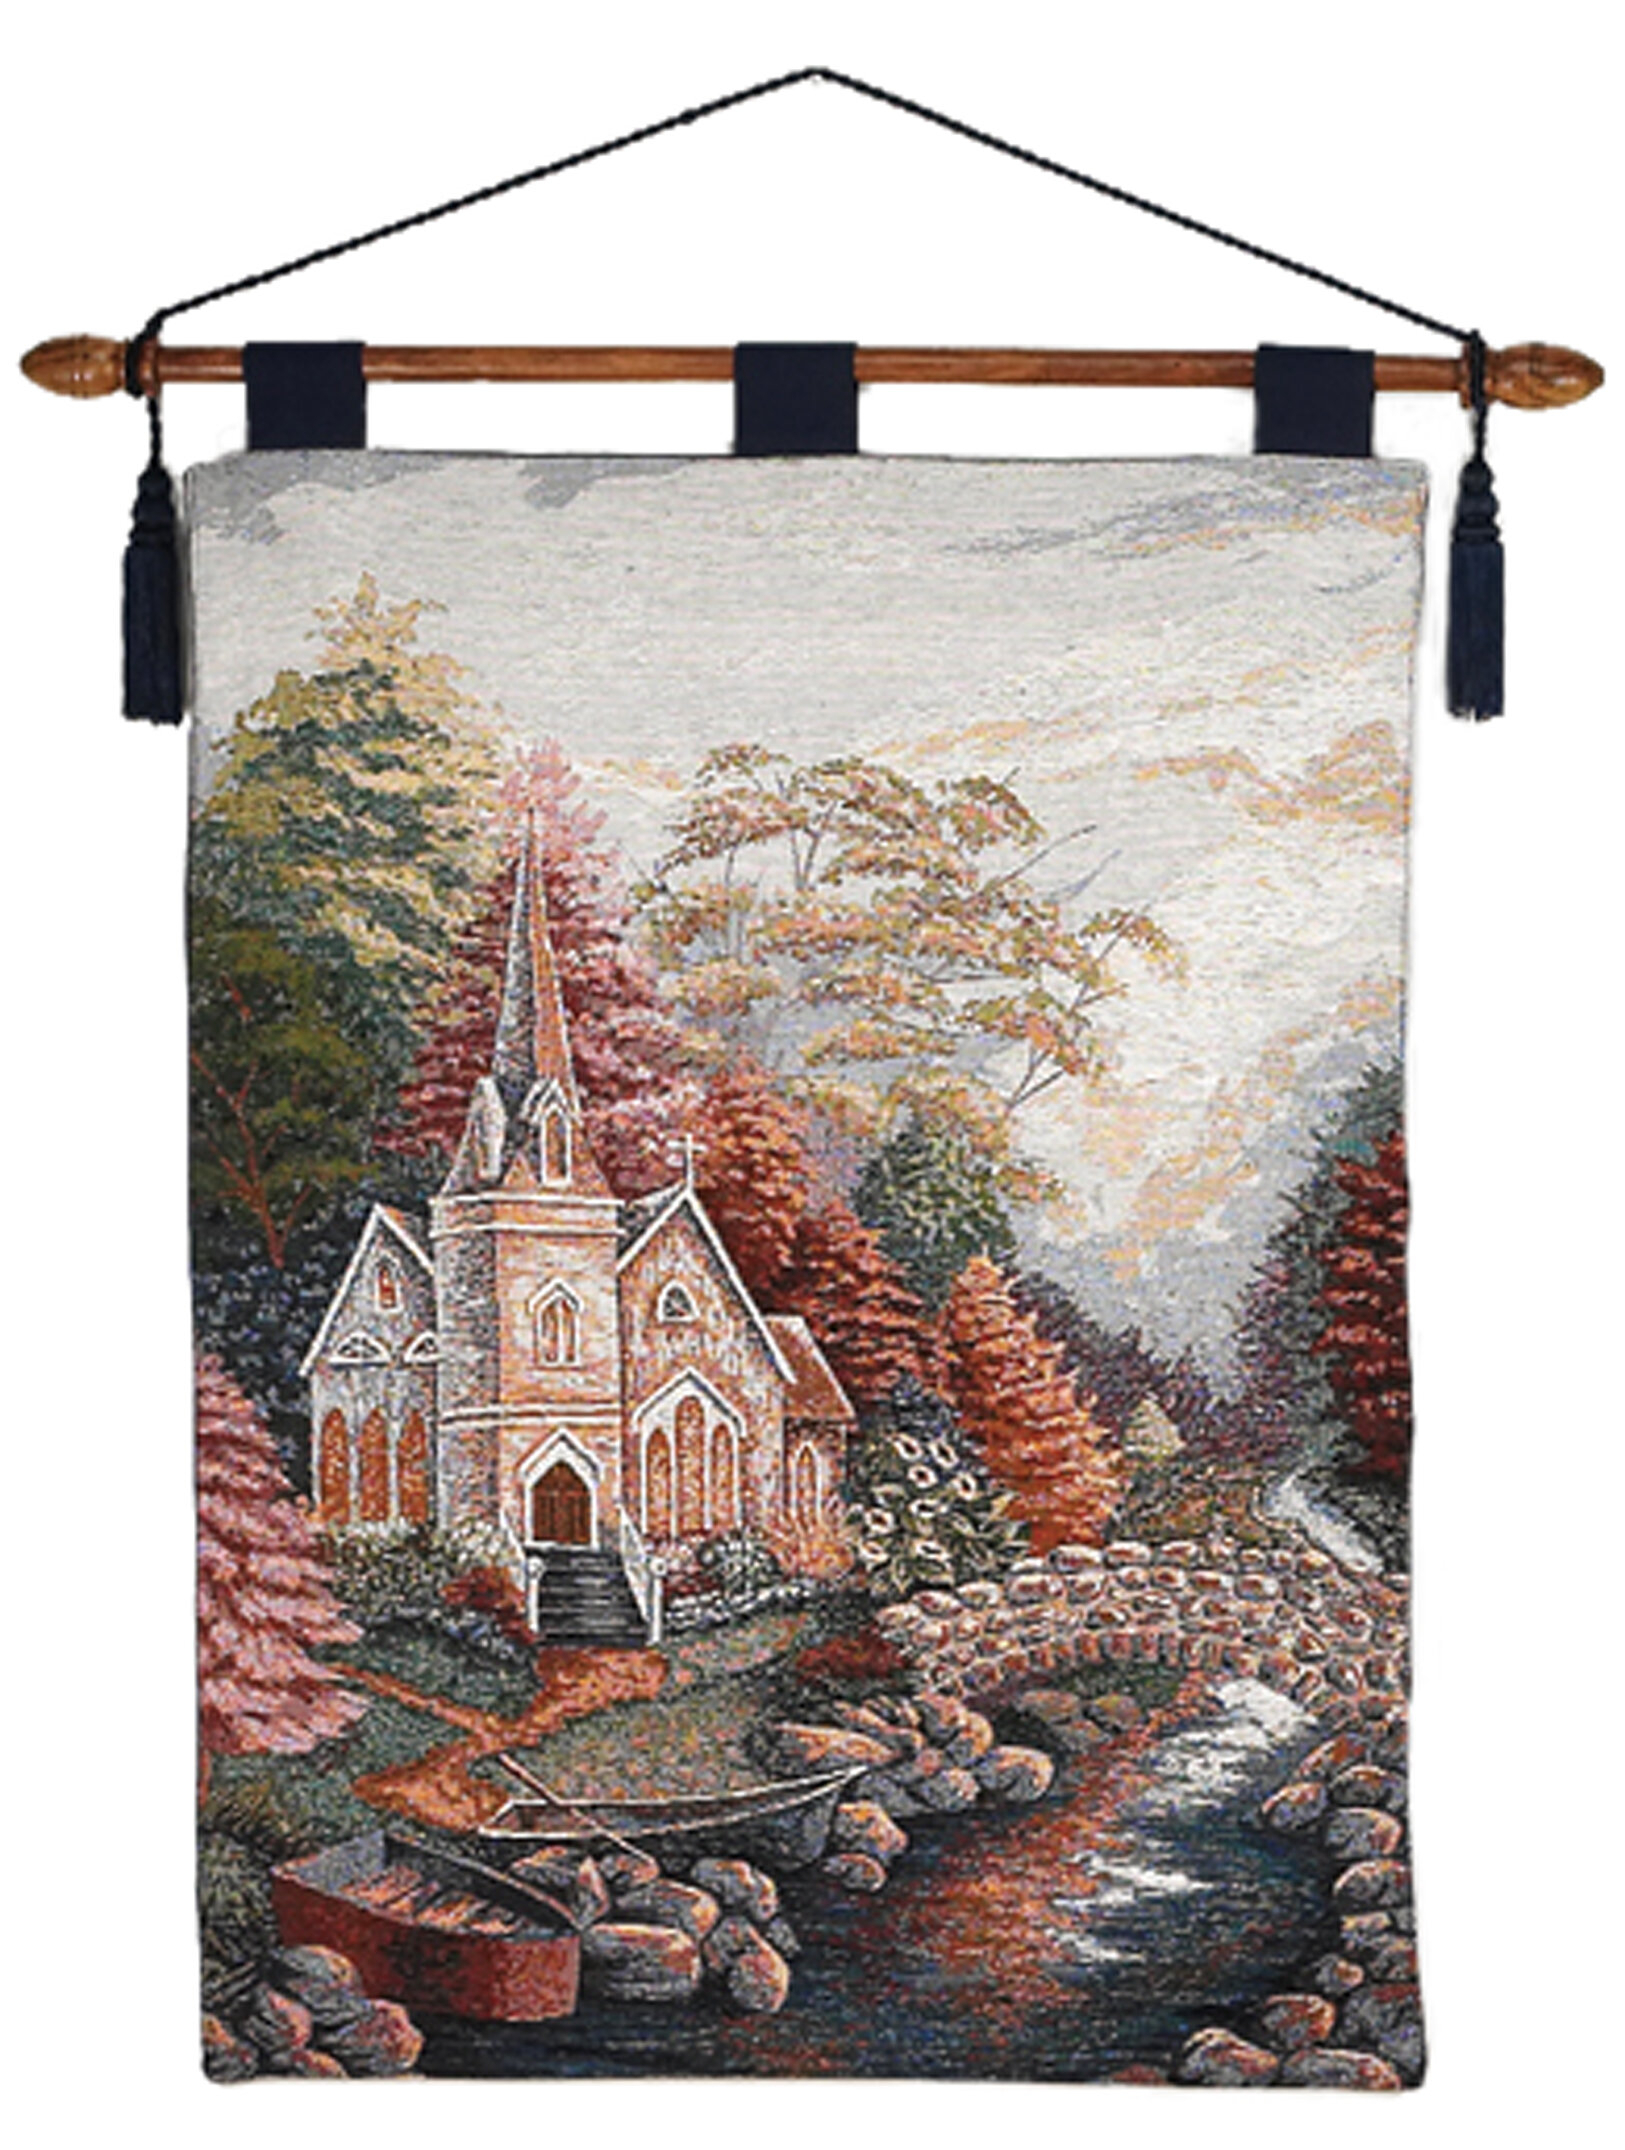 Church Wall Hanging Intended For 2018 Blended Fabric Autumn Tranquility Verse Wall Hangings (View 4 of 20)